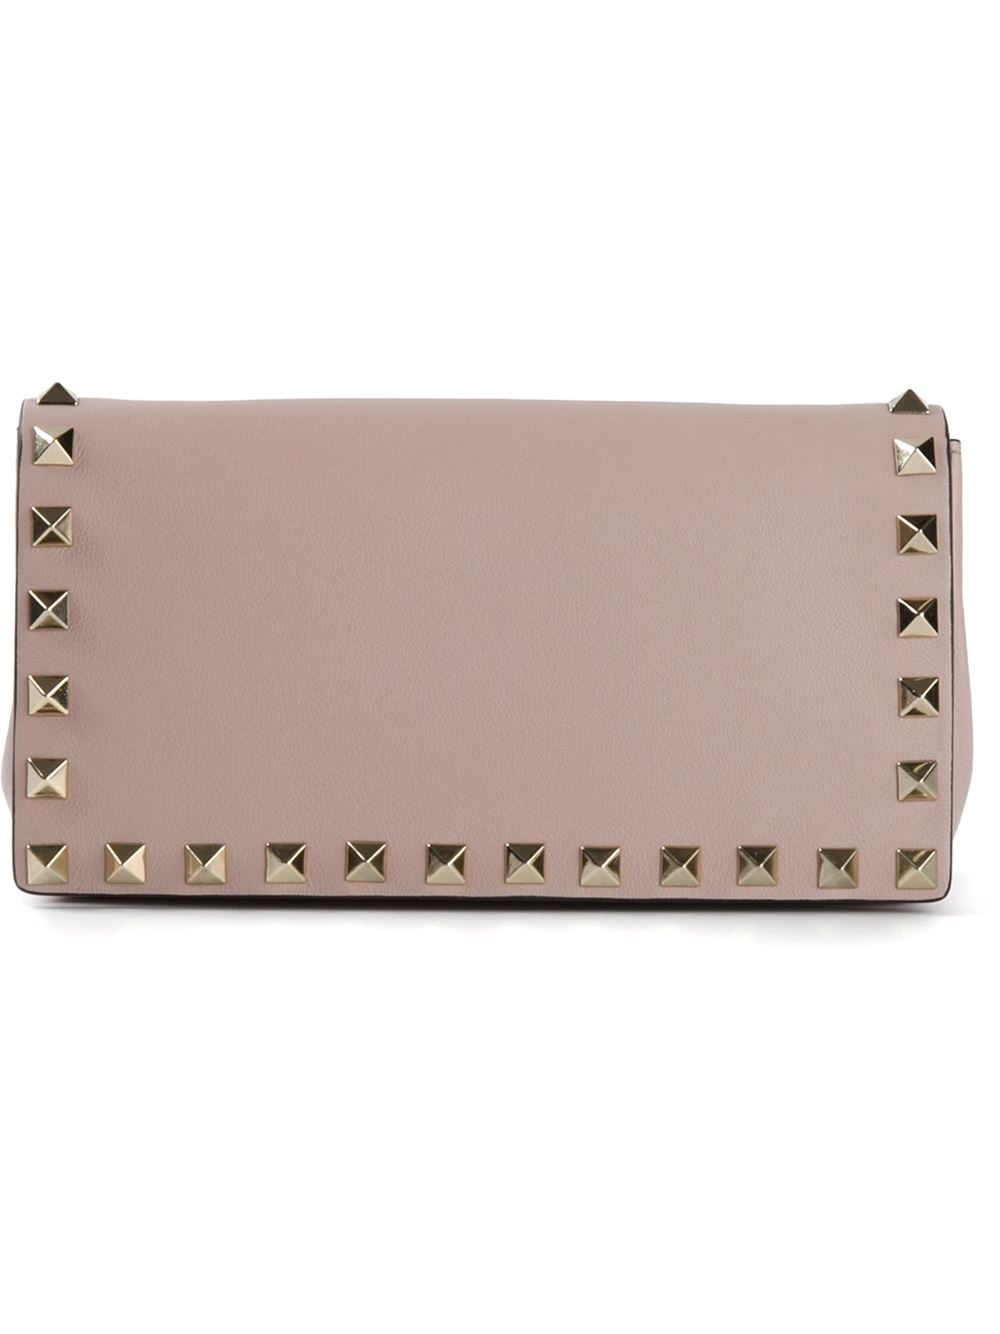 031be9c24eb Gallery. Previously sold at  Farfetch · Women s Cross Body Bags Women s Valentino  Rockstud ...